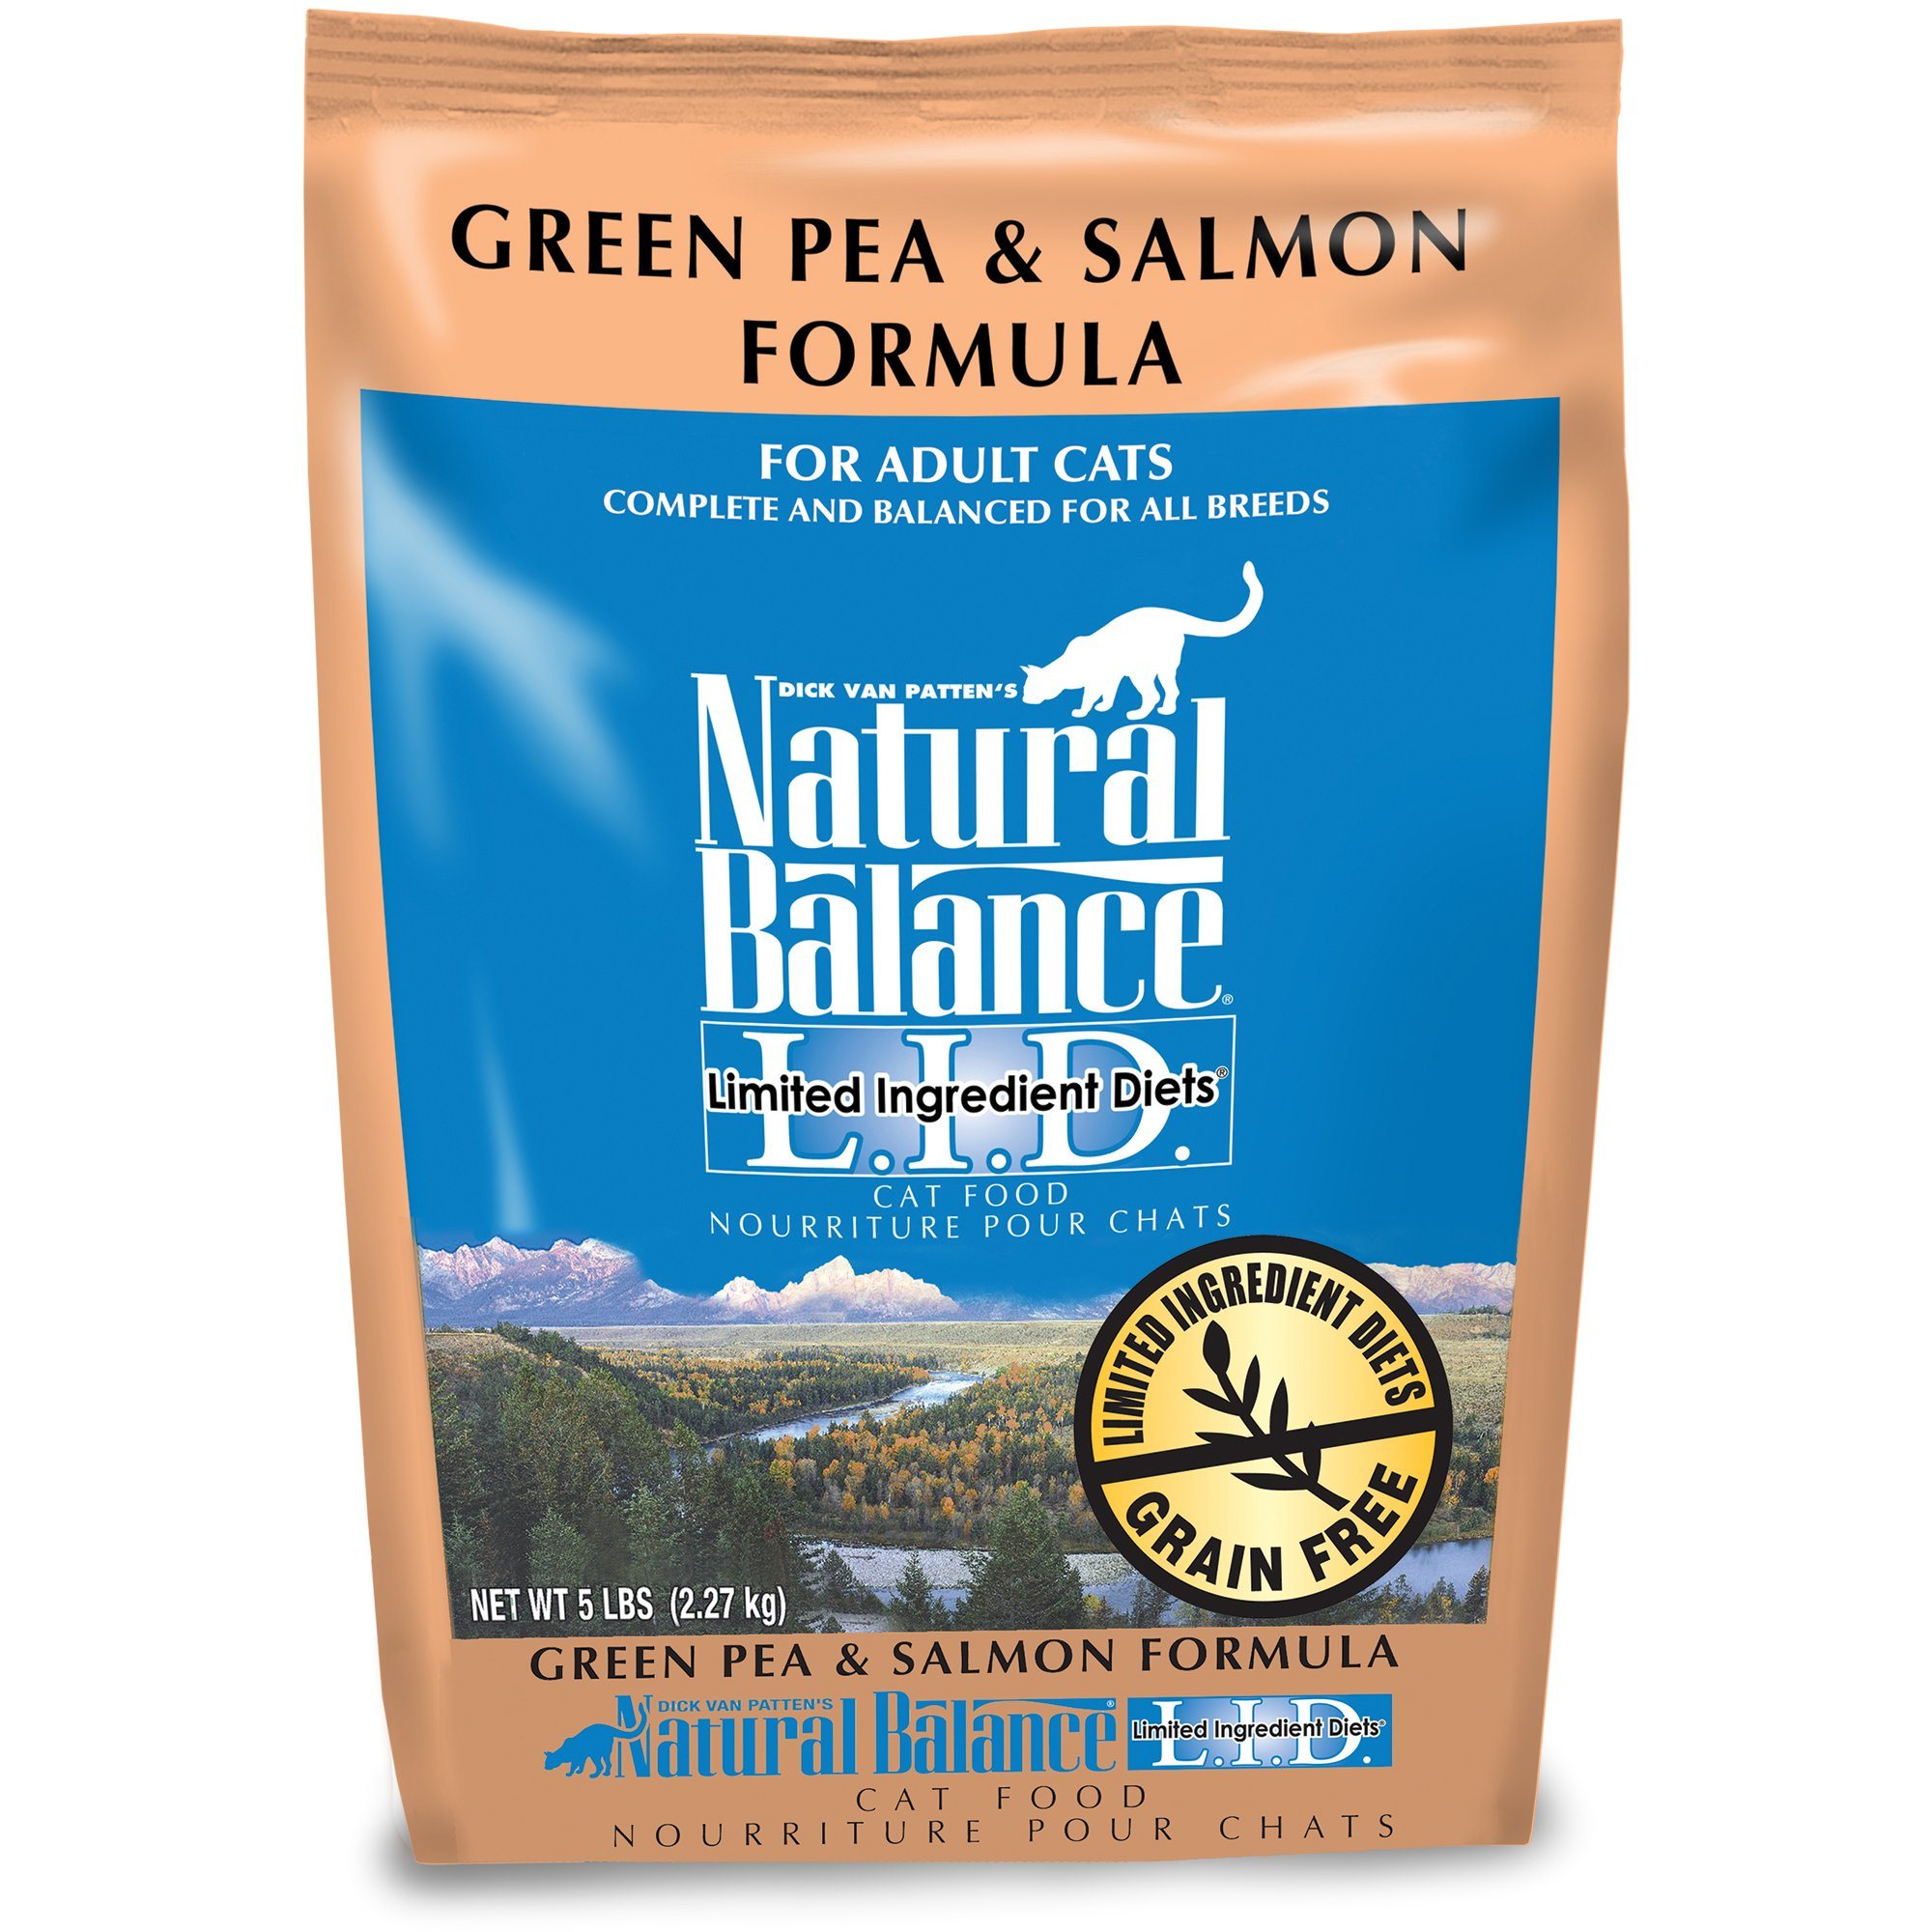 Natural balance lid limited ingredient diets grain free